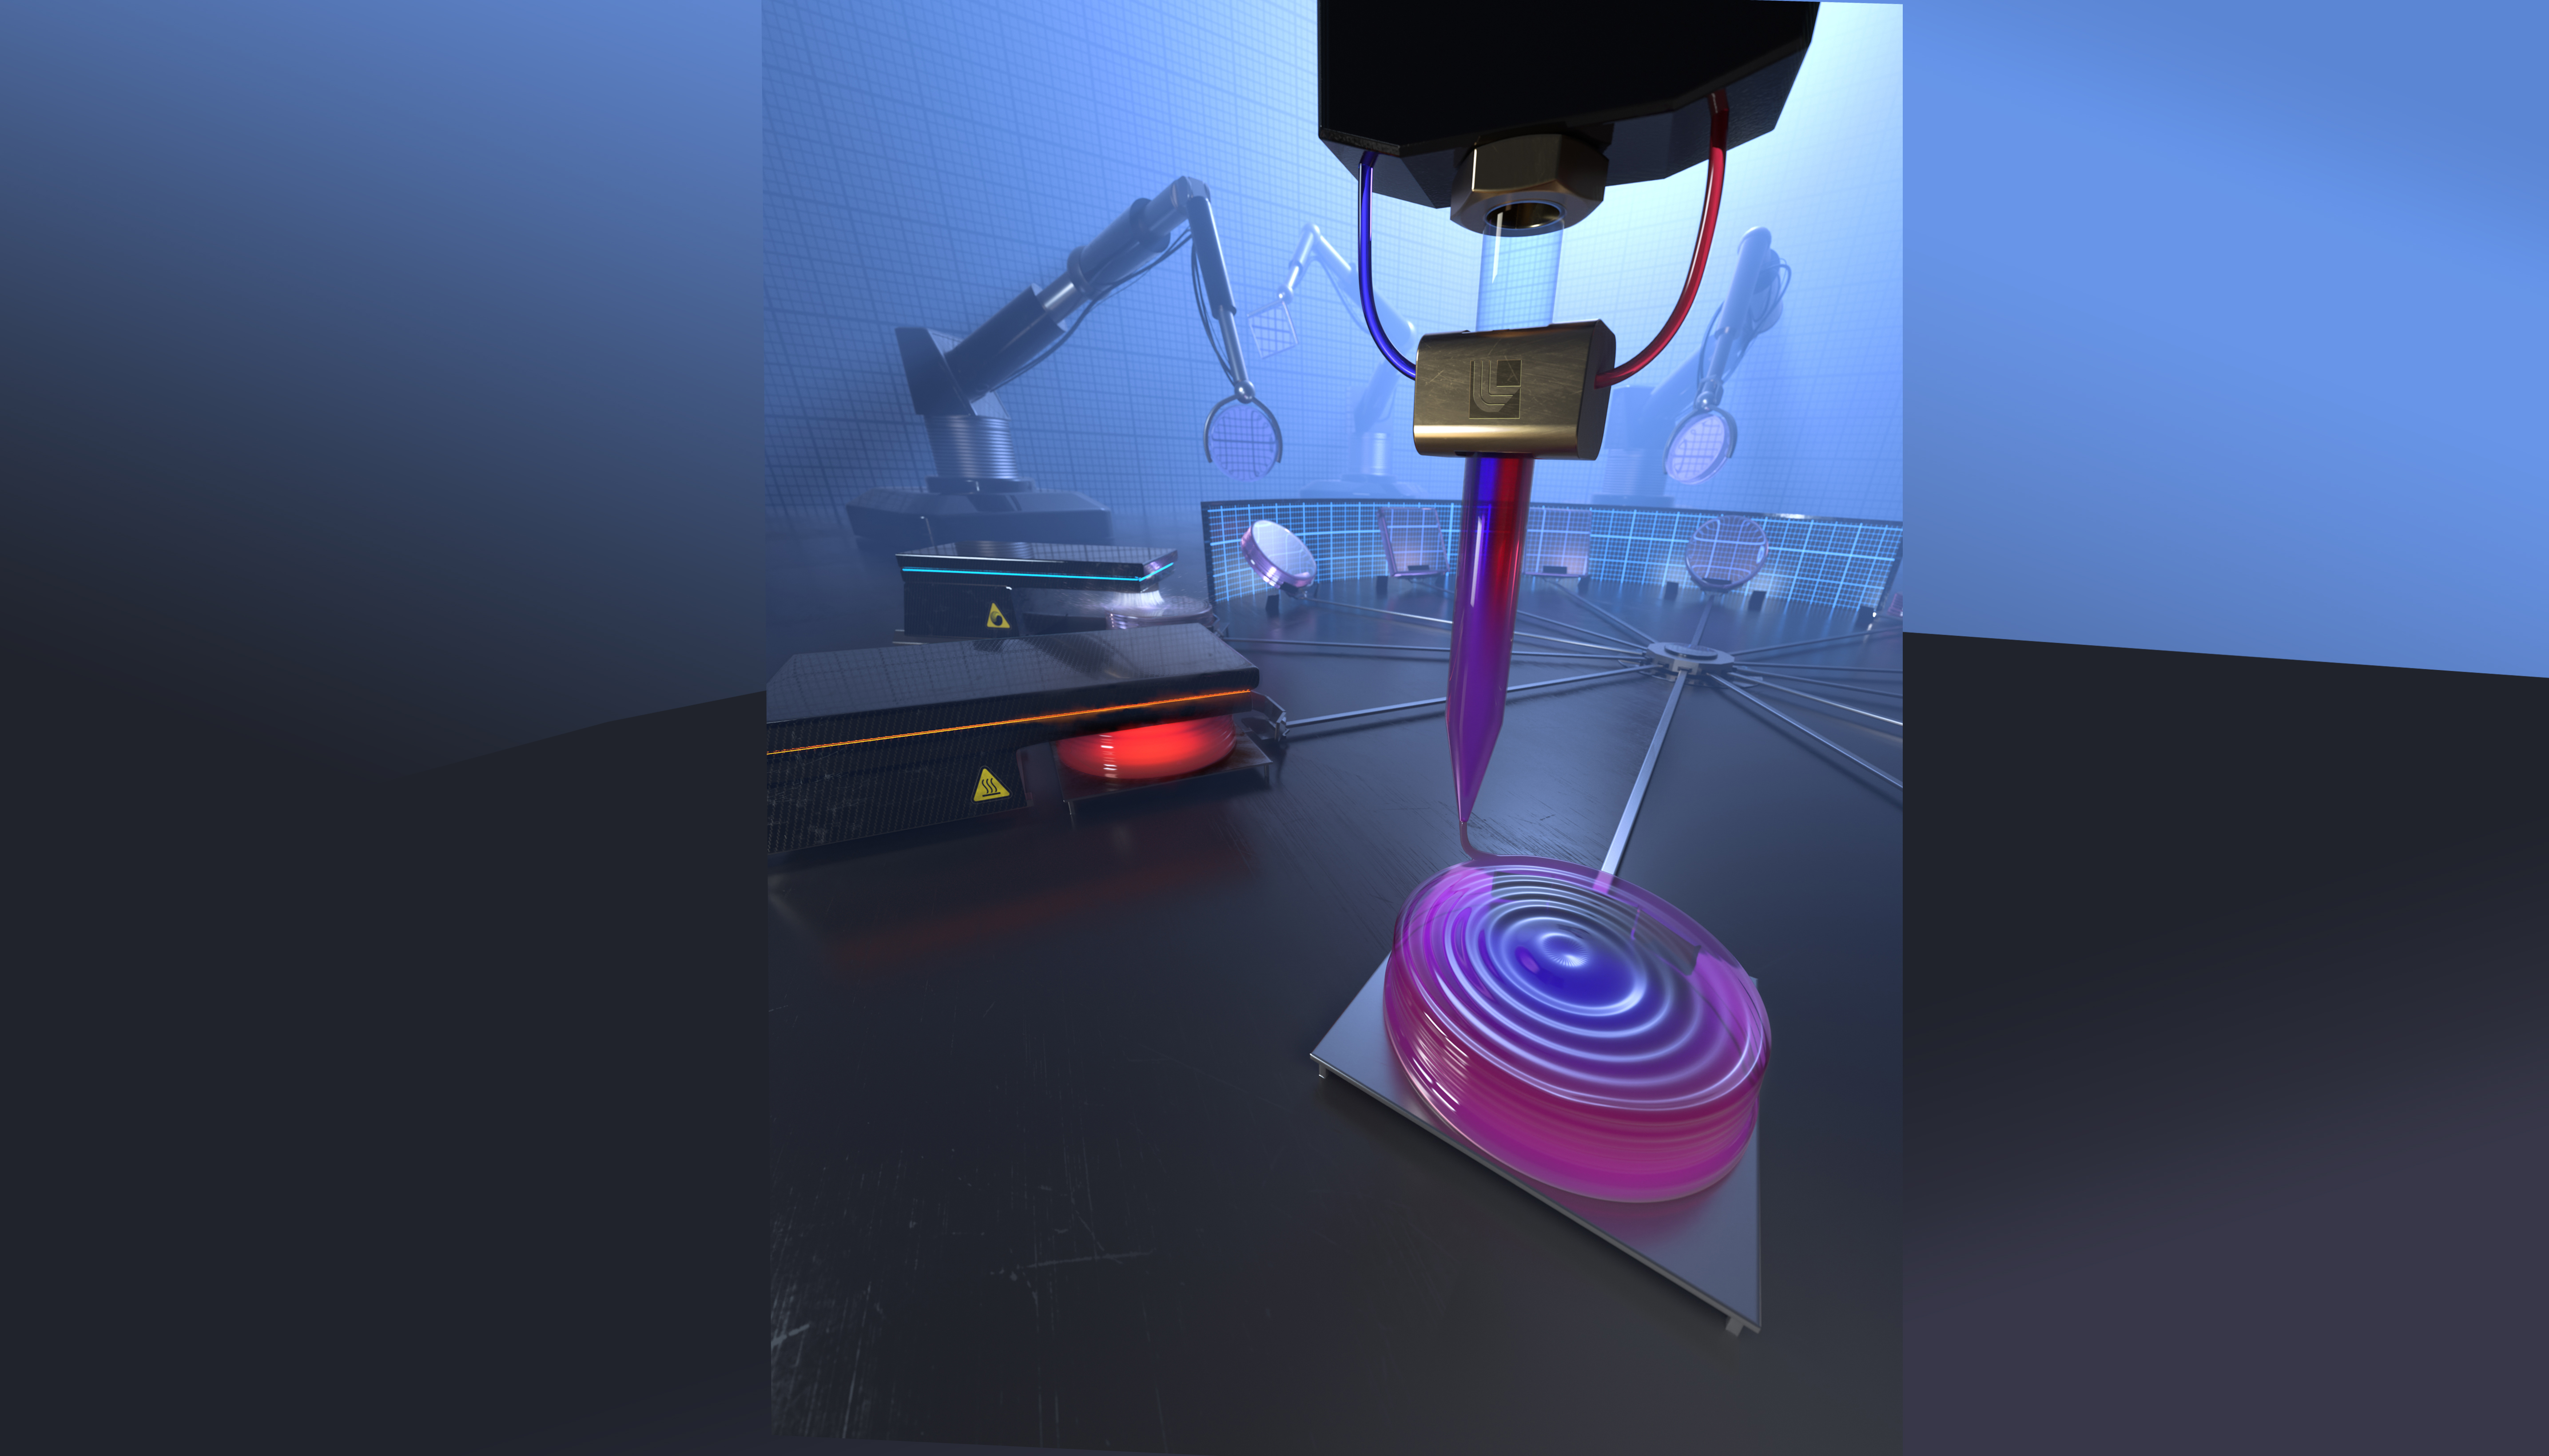 Artistic rendering of an aspirational future automated production process for custom GRIN optics, showing multi-material 3D printing of a tailored composition optic preform. Image via Jacob Long and Brian Chavez.